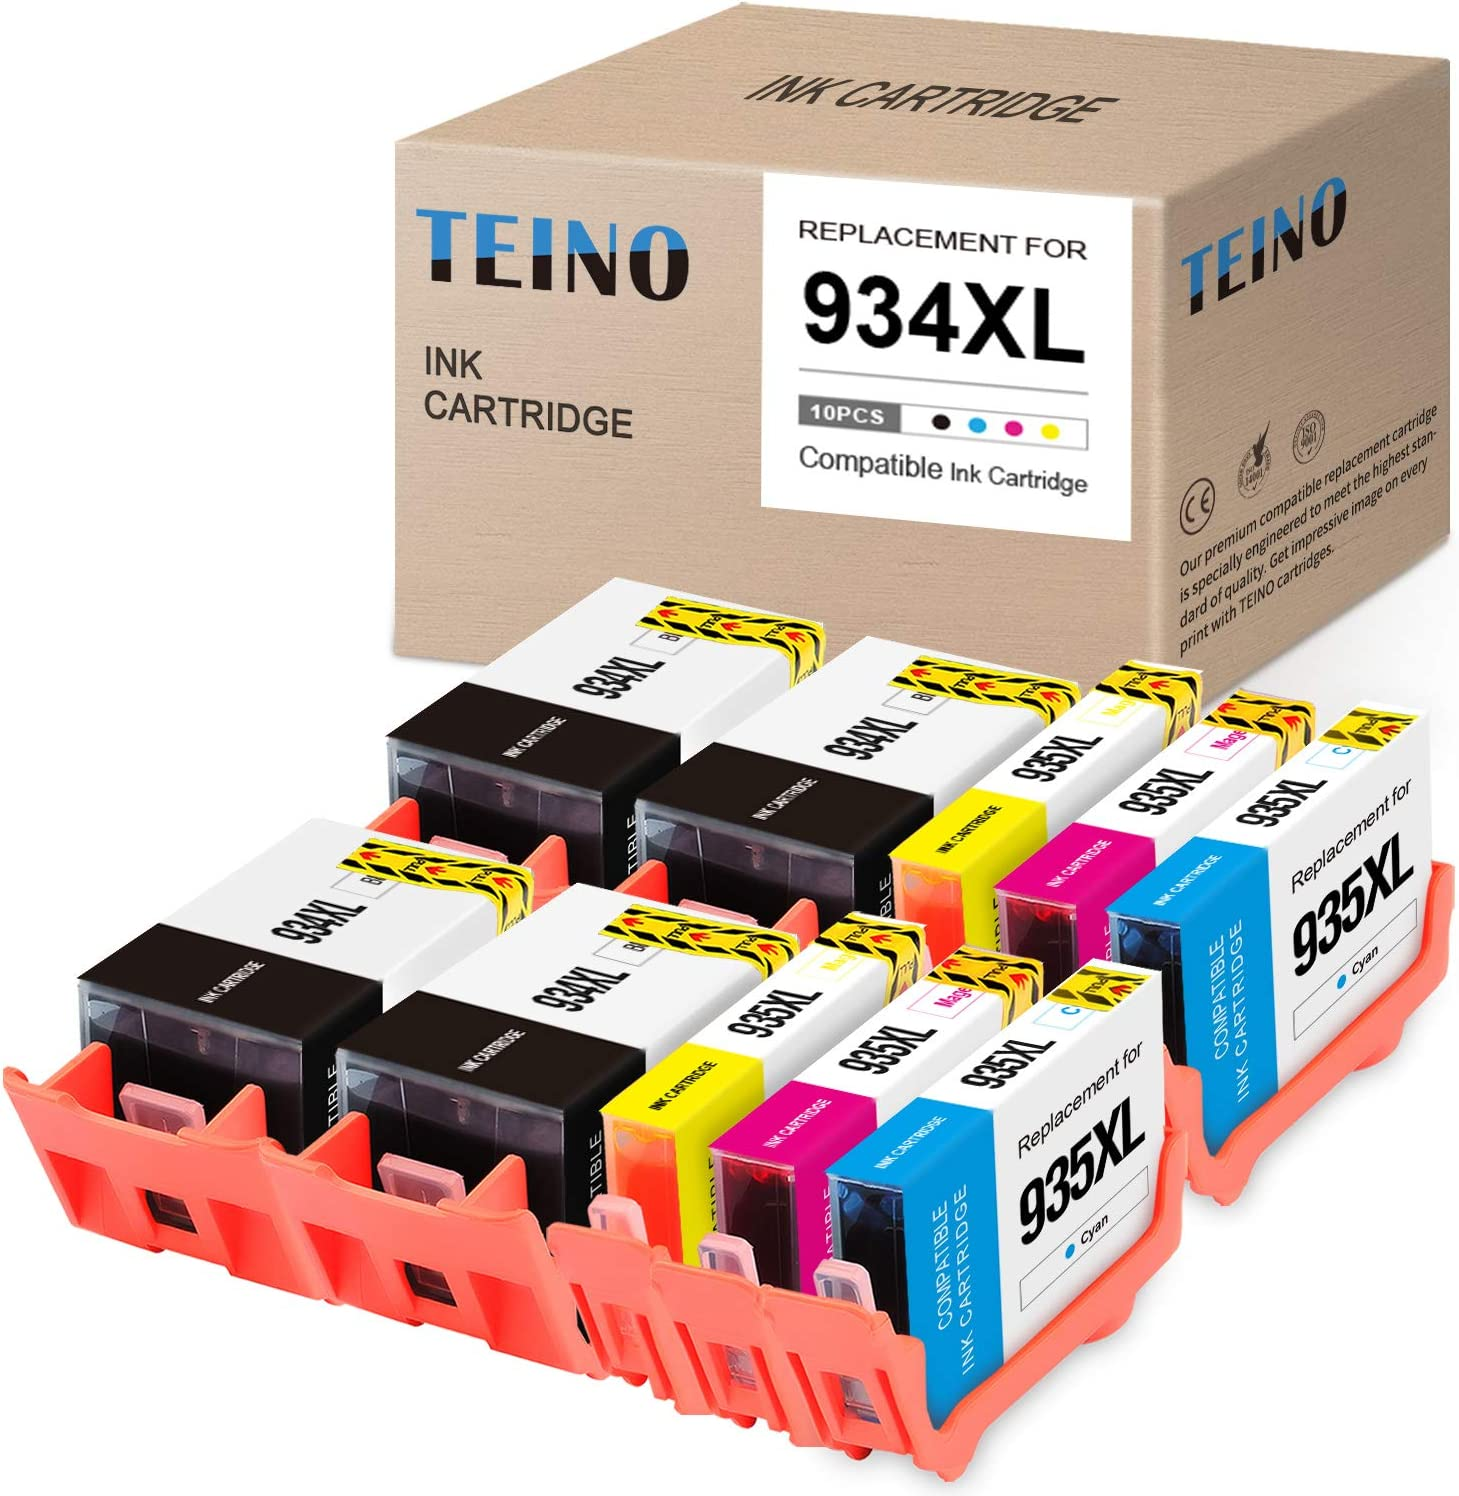 TEINO Compatible Ink Cartridges Replacement for HP 934 935 XL 934XL 935XL use with HP OfficeJet Pro 6830 6230 6835 6812 6815 6220 6810 6820 (Black, Cyan, Magenta, Yellow, 10-Pack)